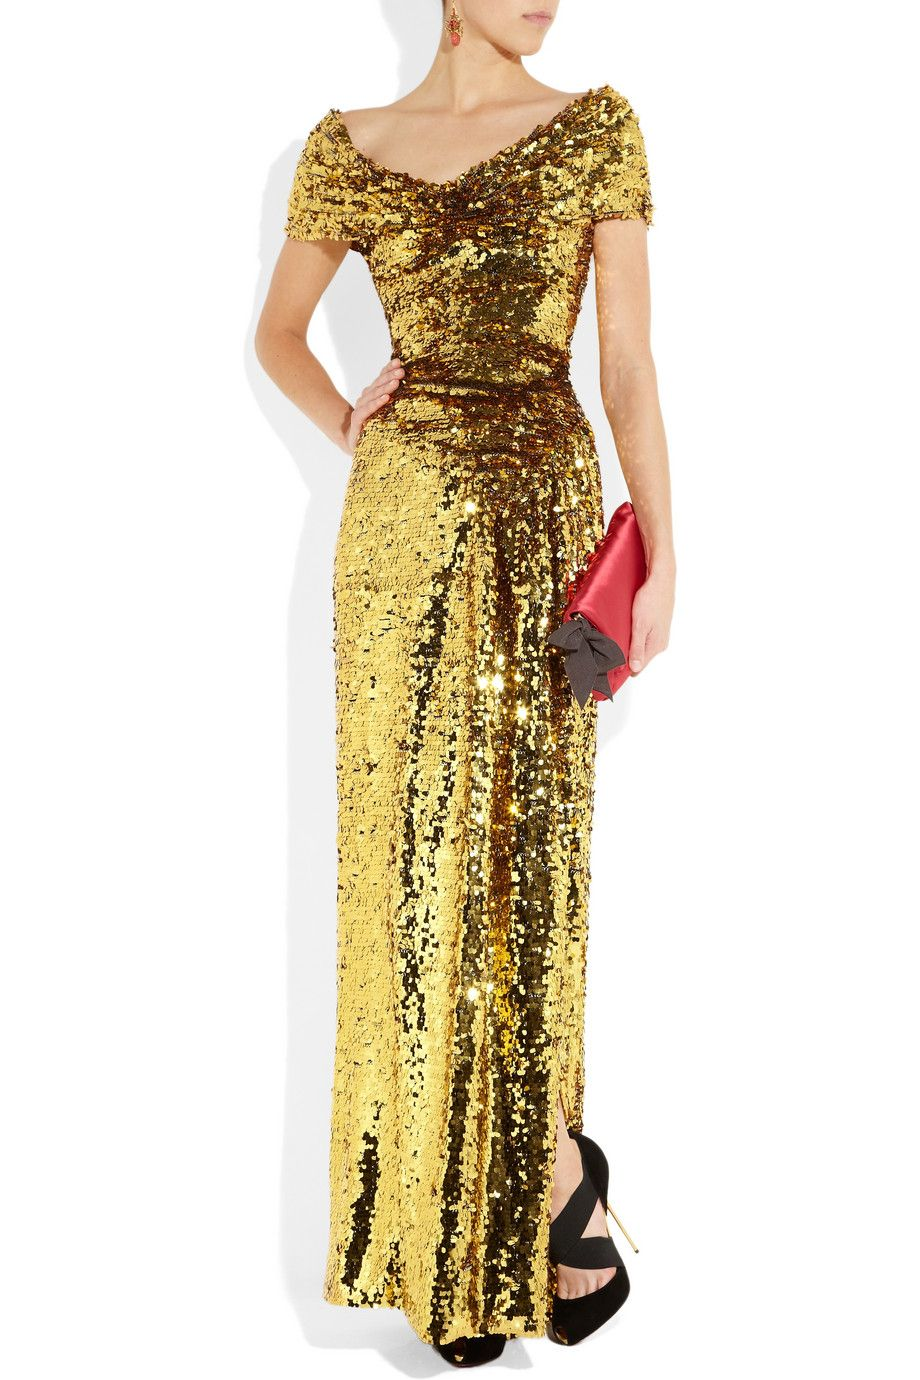 Vivienne westwood gold label long glazing metallic gold sequined